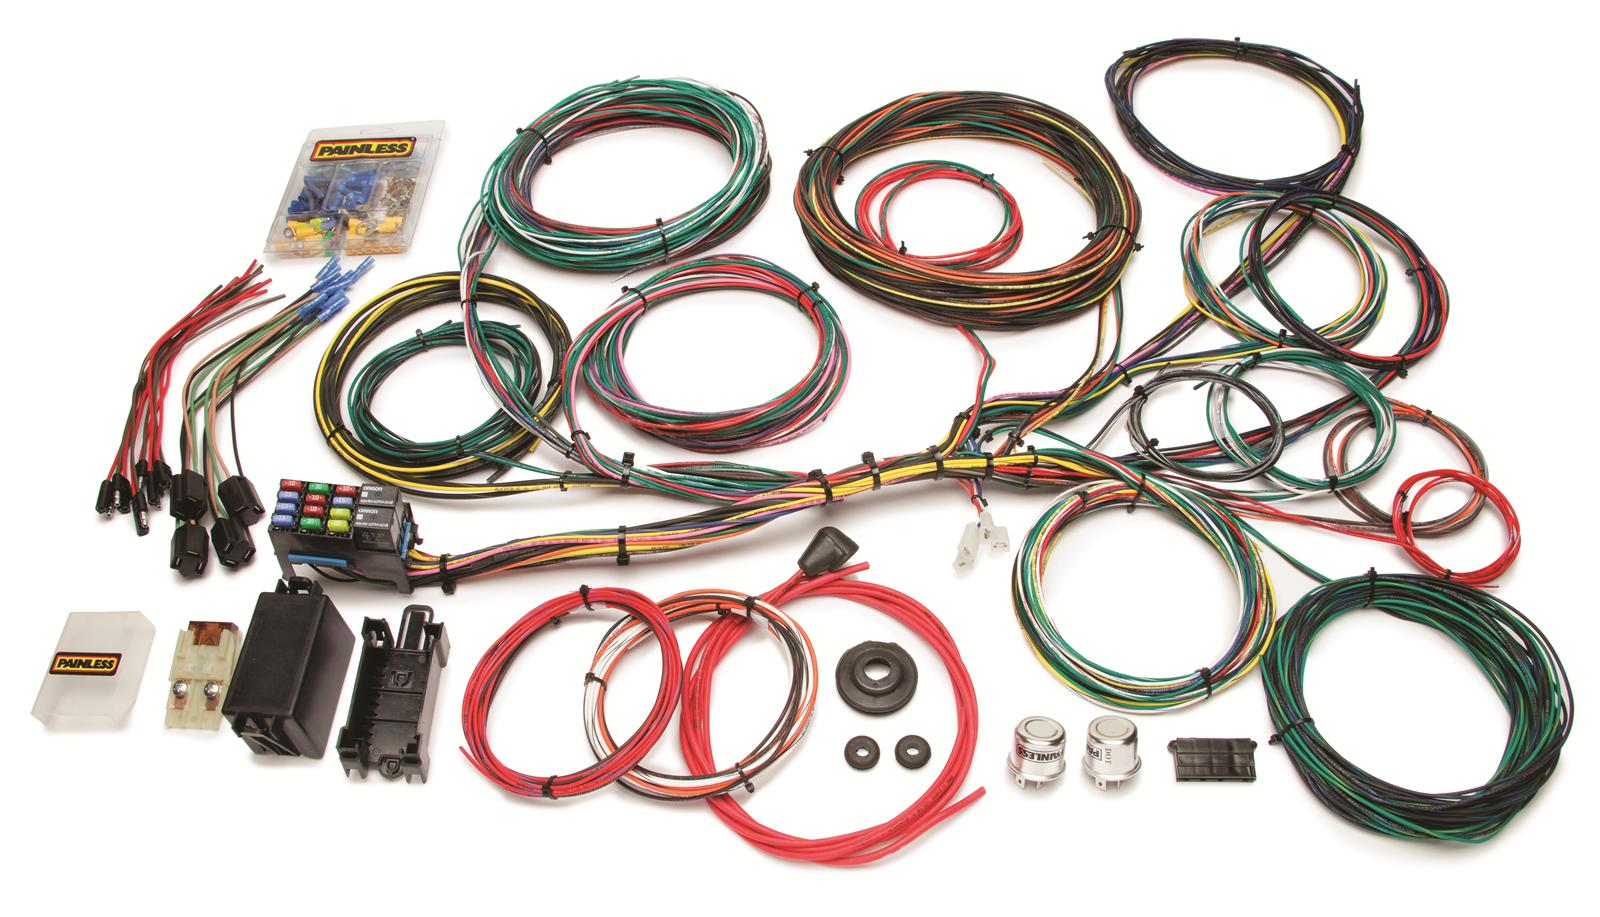 Painless Performance 21 Circuit Ford Color Coded Universal Harnesses Wiring Harness Hot Rod 10123 Free Shipping On Orders Over 99 At Summit Racing